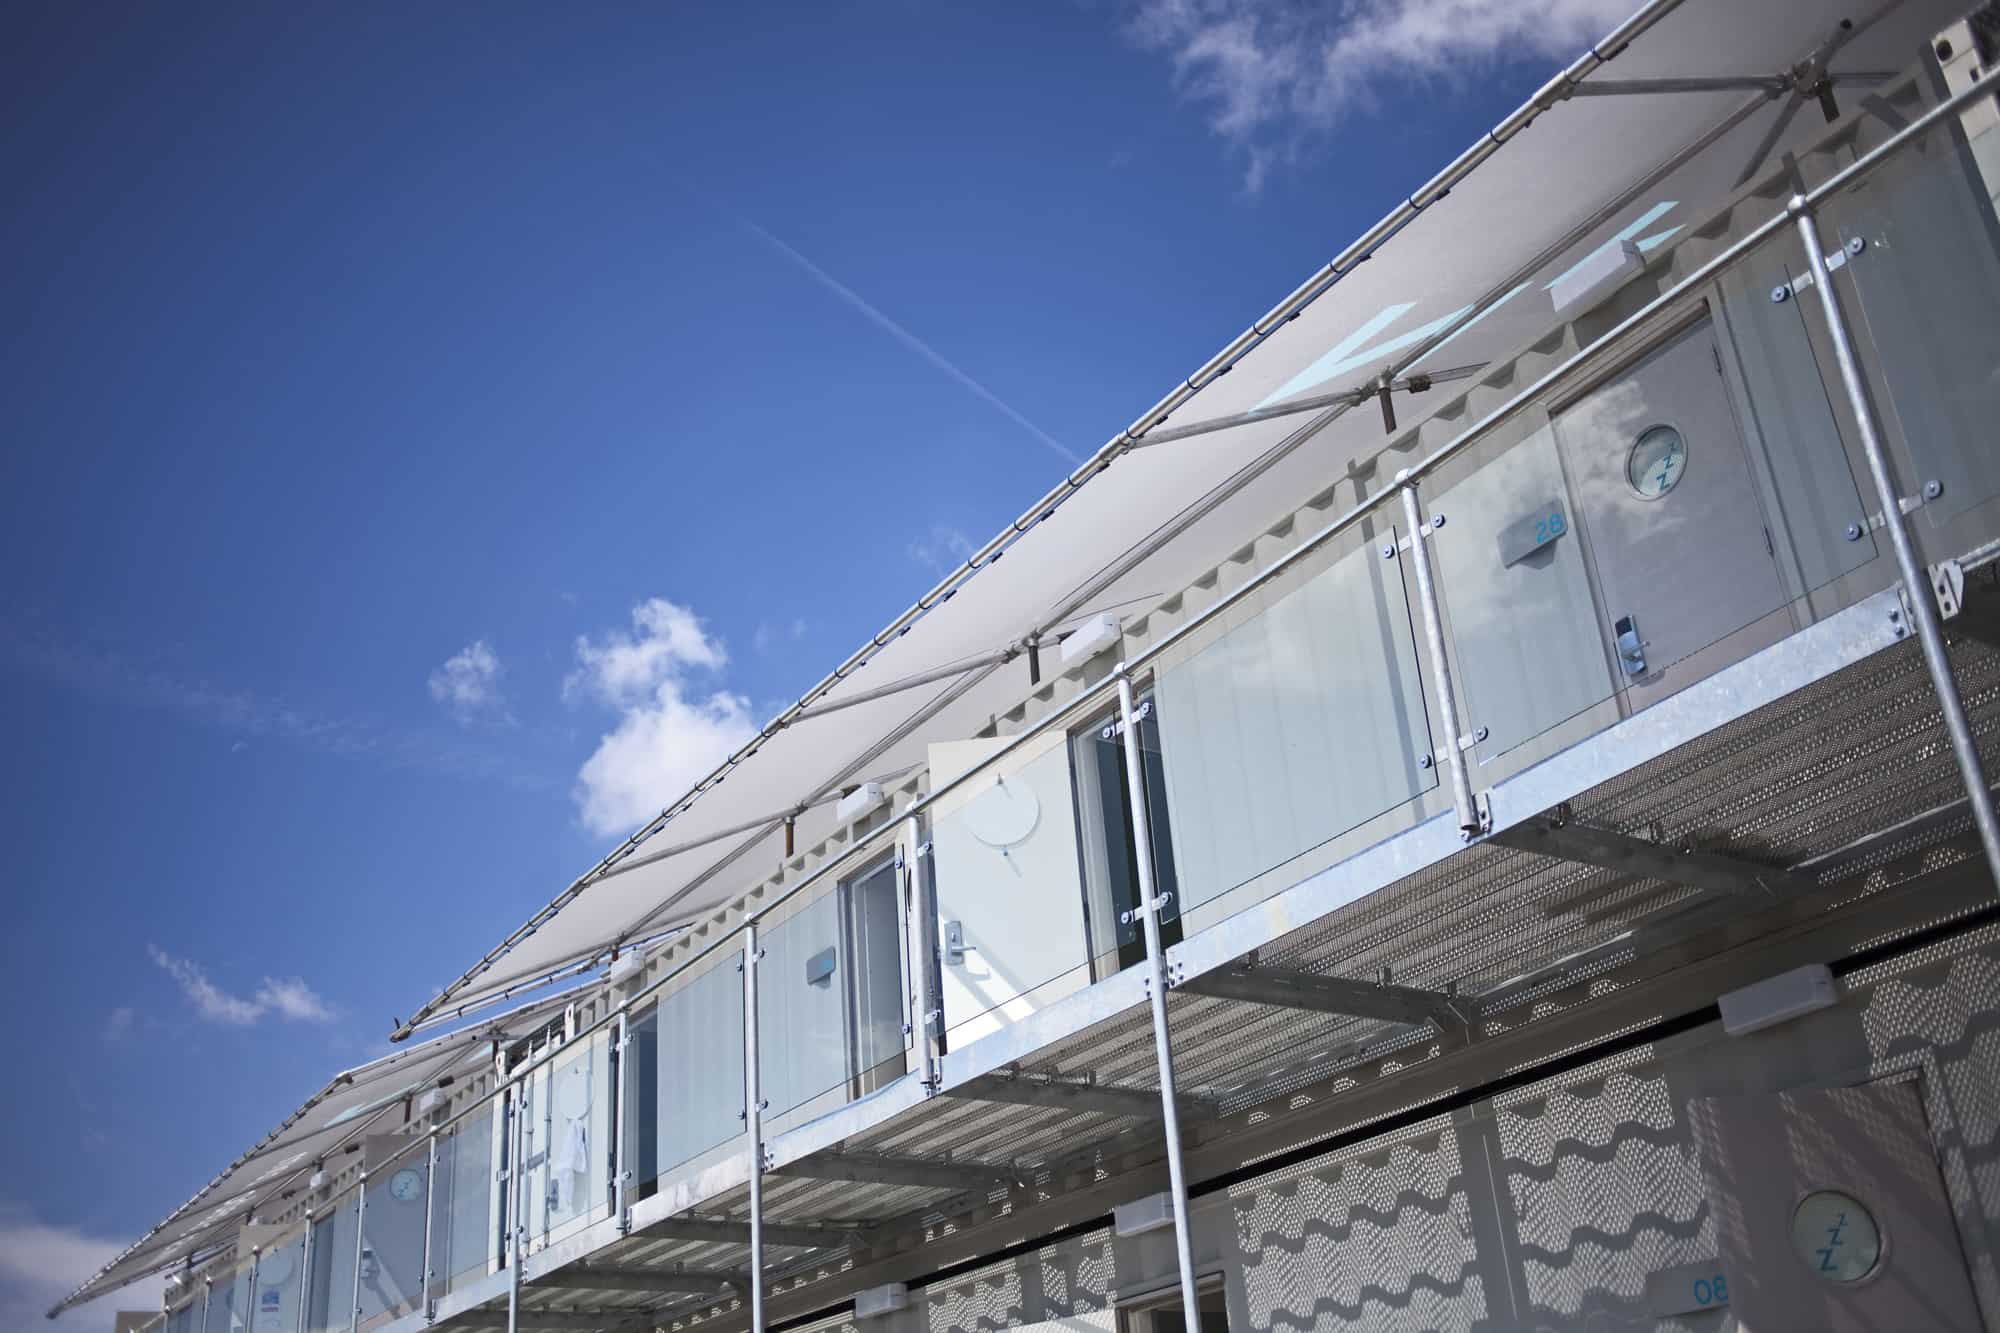 Snoozebox Hotel - containerised accommodation solution